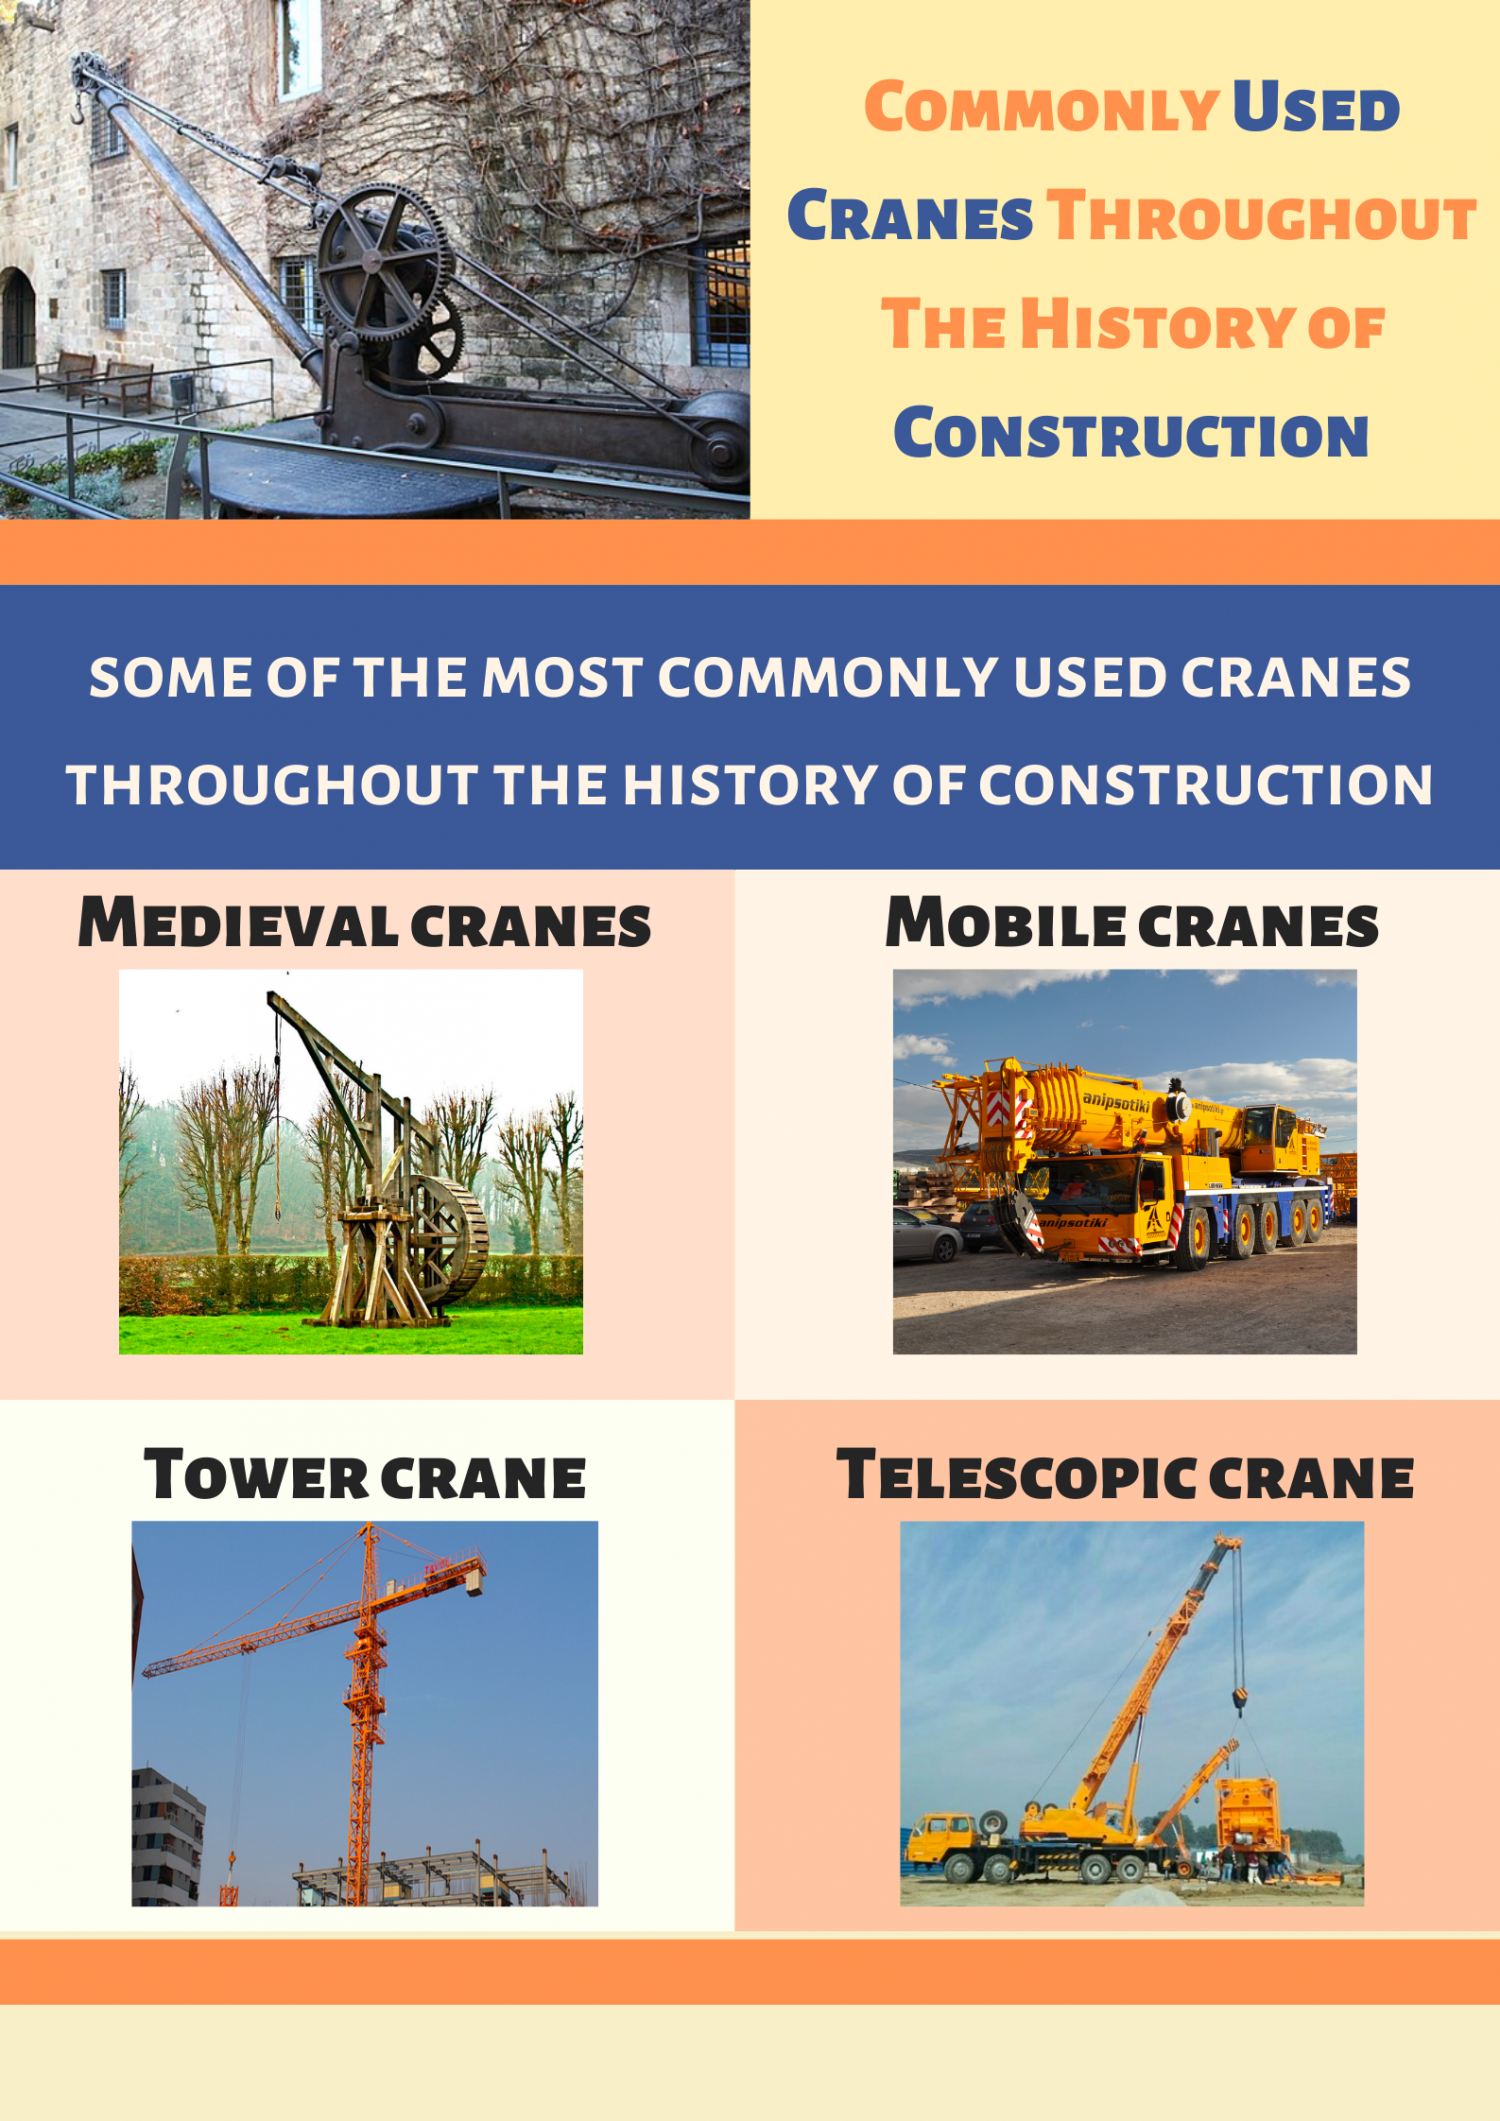 Commonly Used Cranes Throughout The History of Construction Infographic